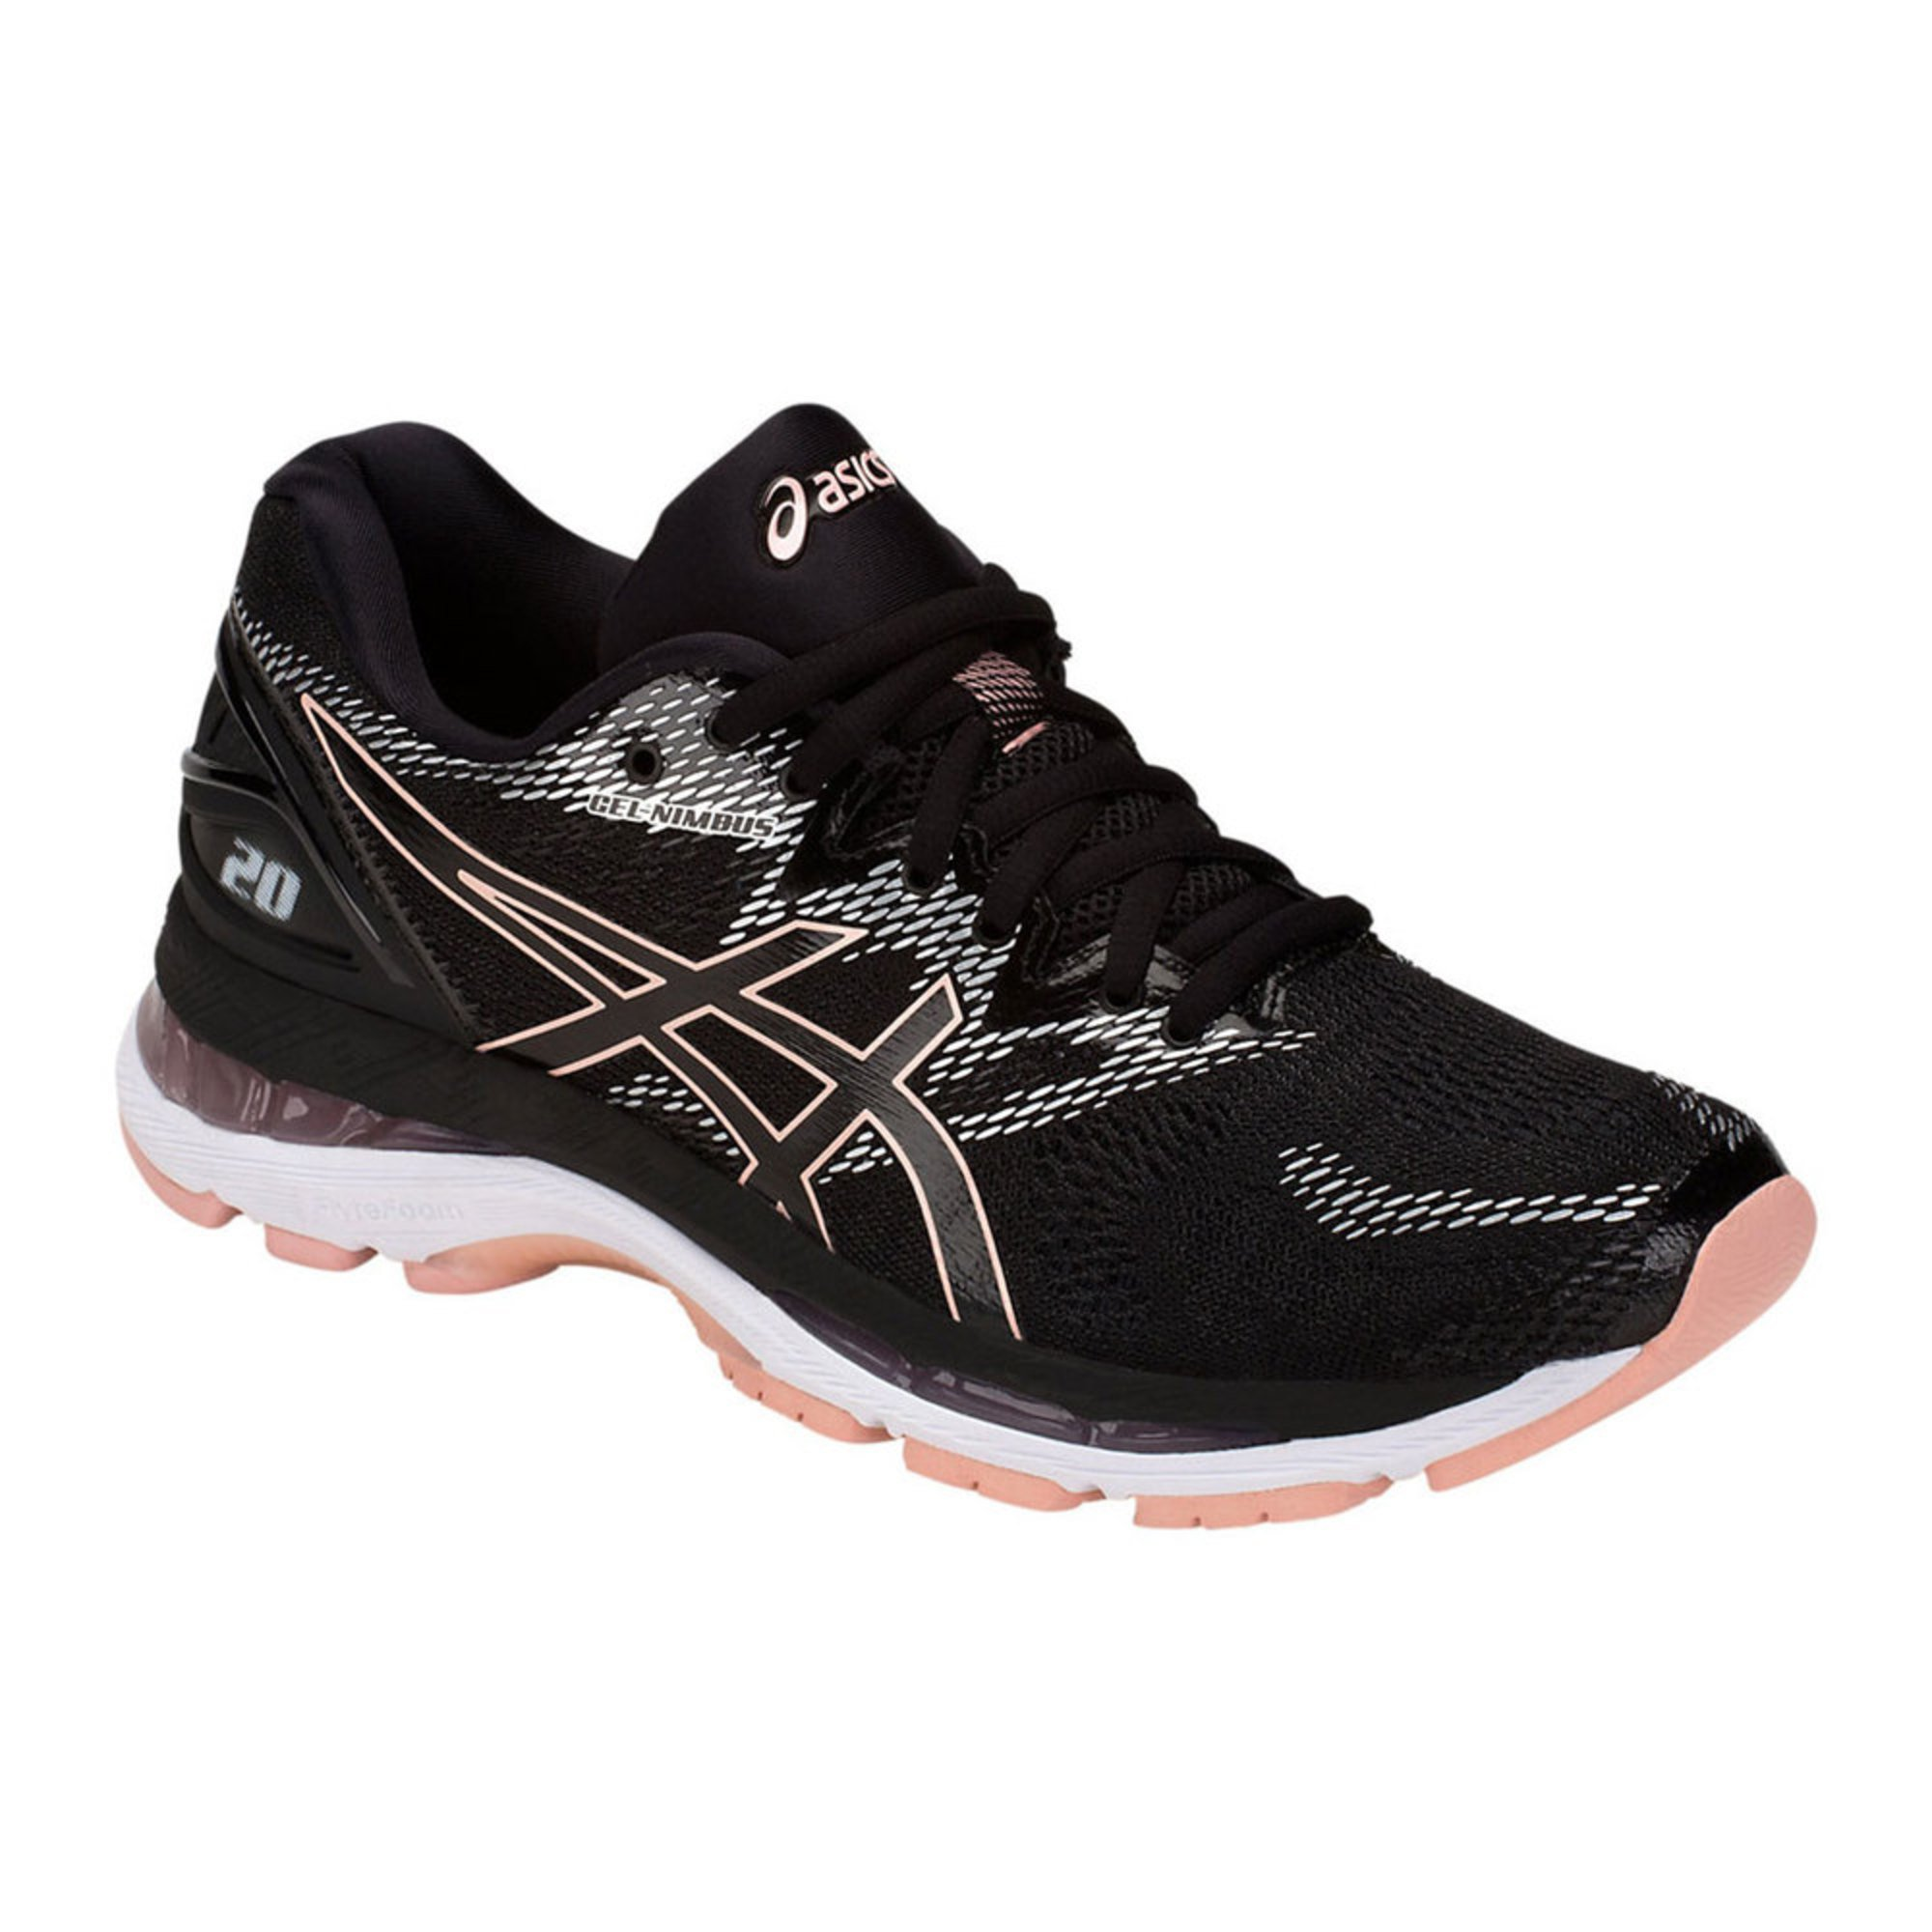 the best attitude b84cc 3ba61 Asics Women's Gel Nimbus 20 Running Shoe